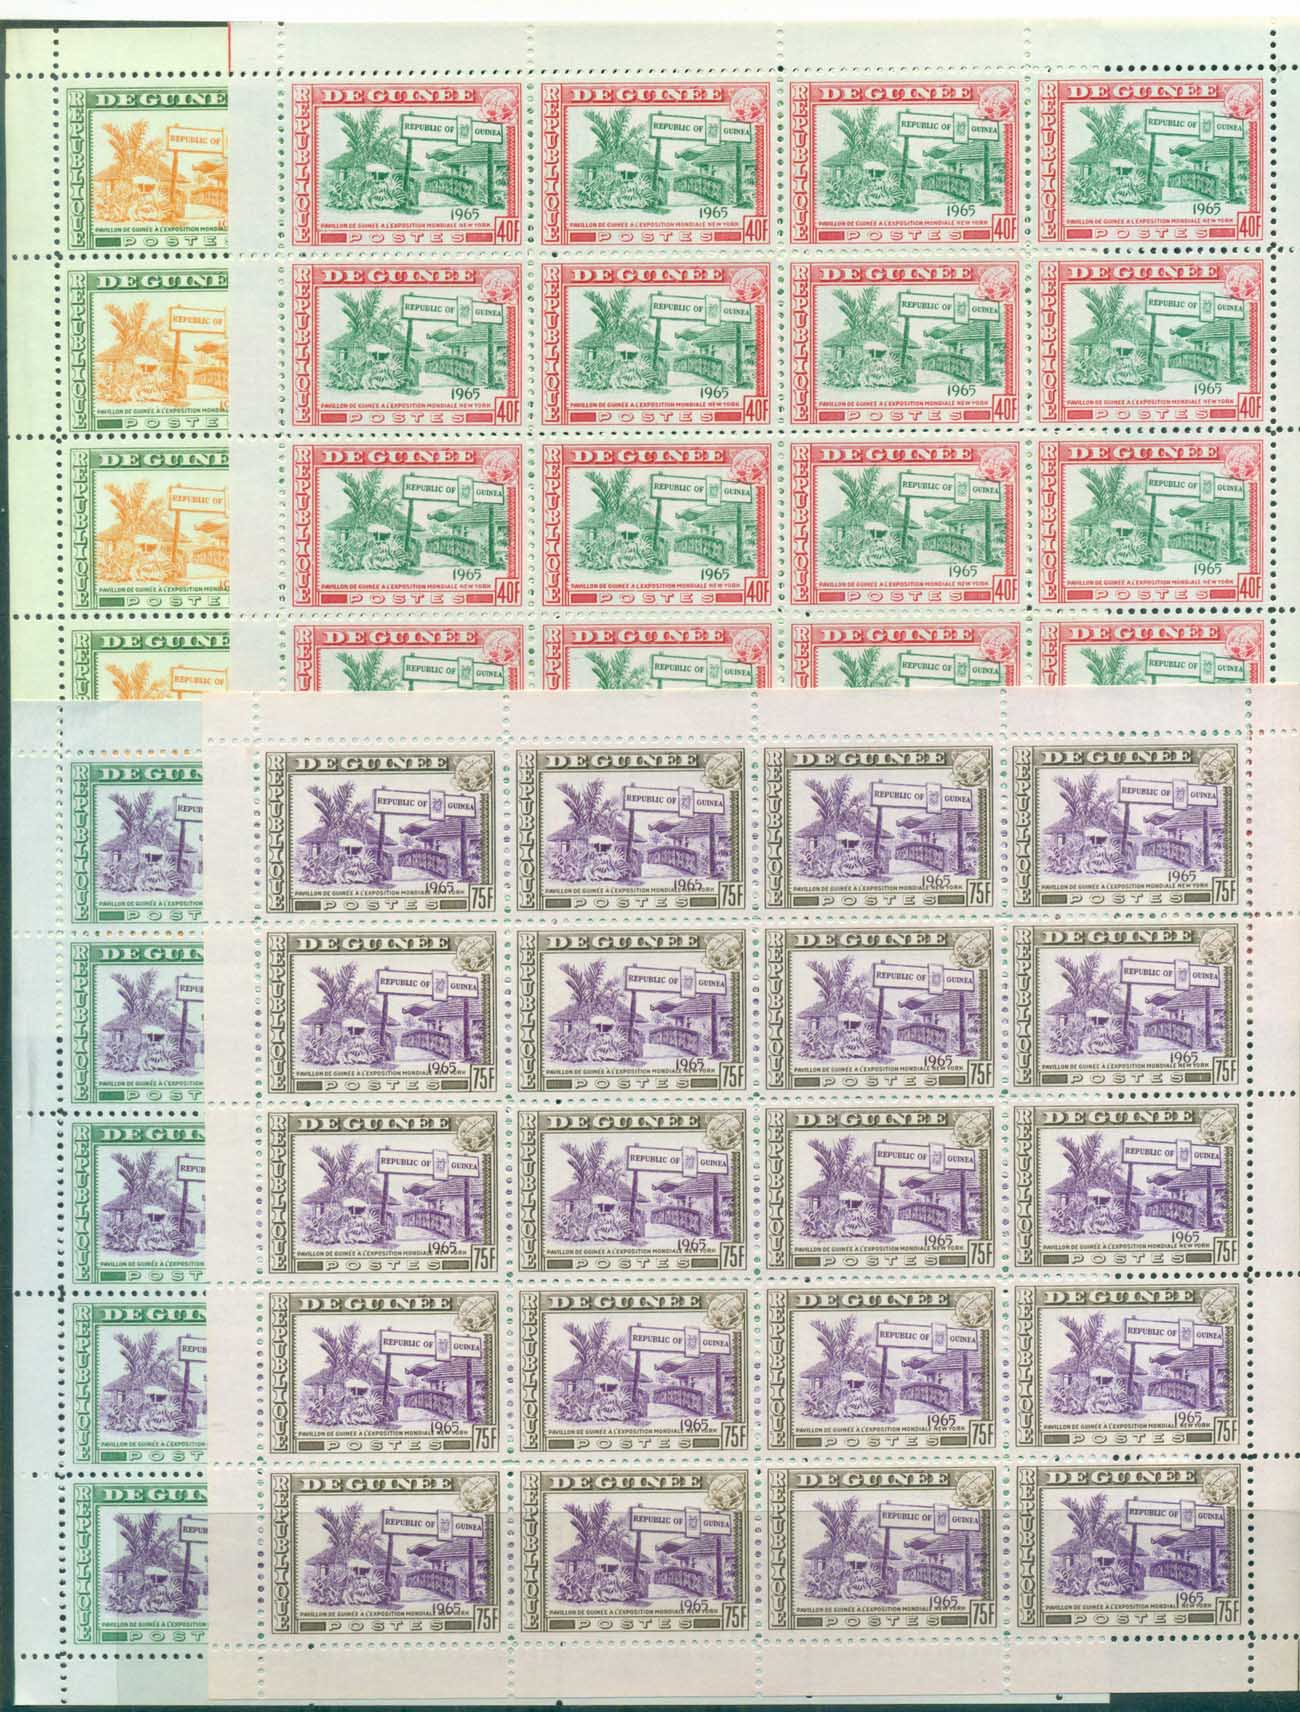 Guinee 1964 New Youk World Fair sheets 4x20 MUH